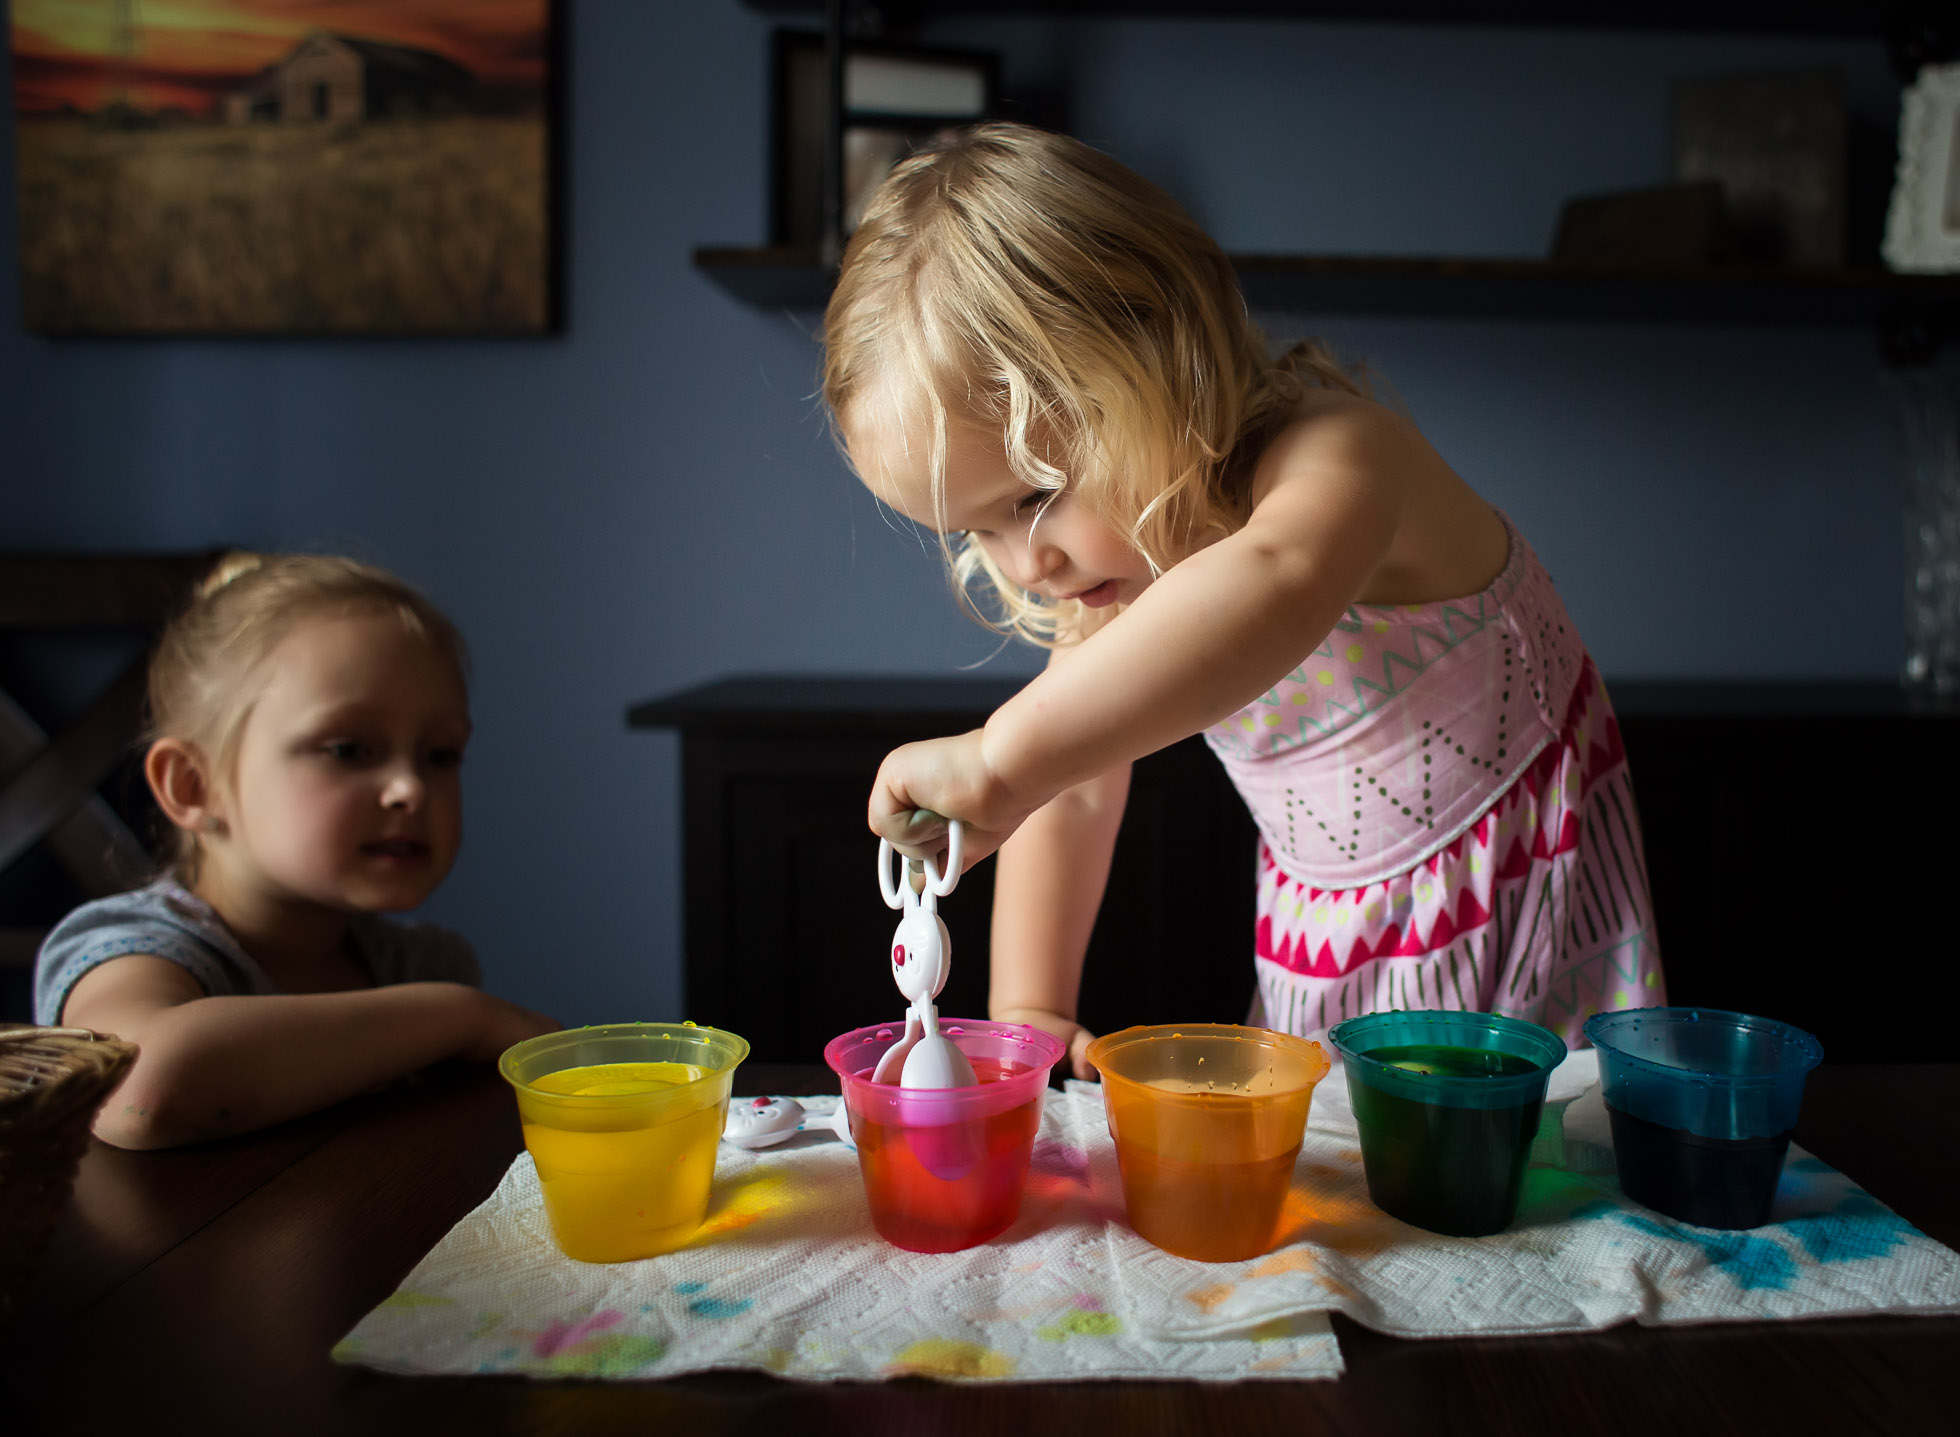 my turn toddler girl easter egg dye window light lifestyle photography edmond ok photographer oklahoma city natural light photographer kate luber photography